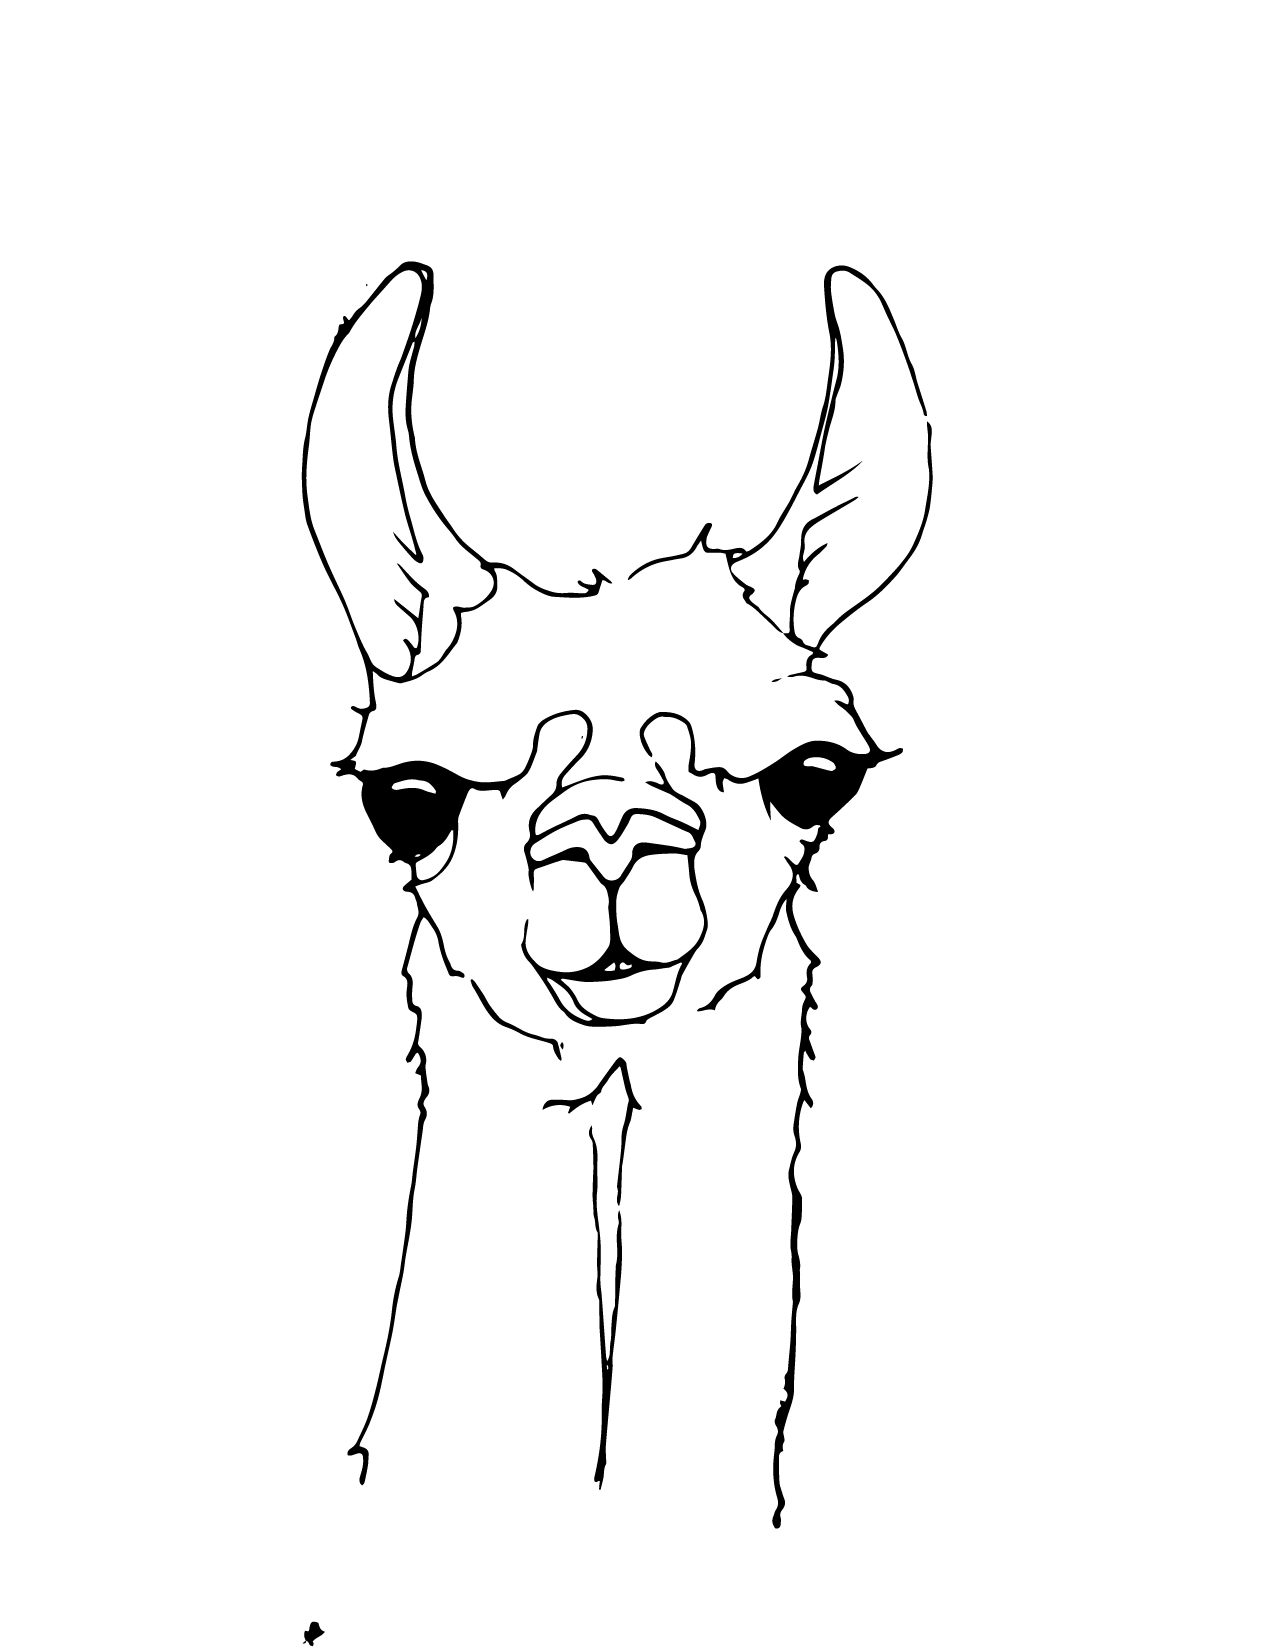 Llama Coloring coloring page, coloring image, clipart image